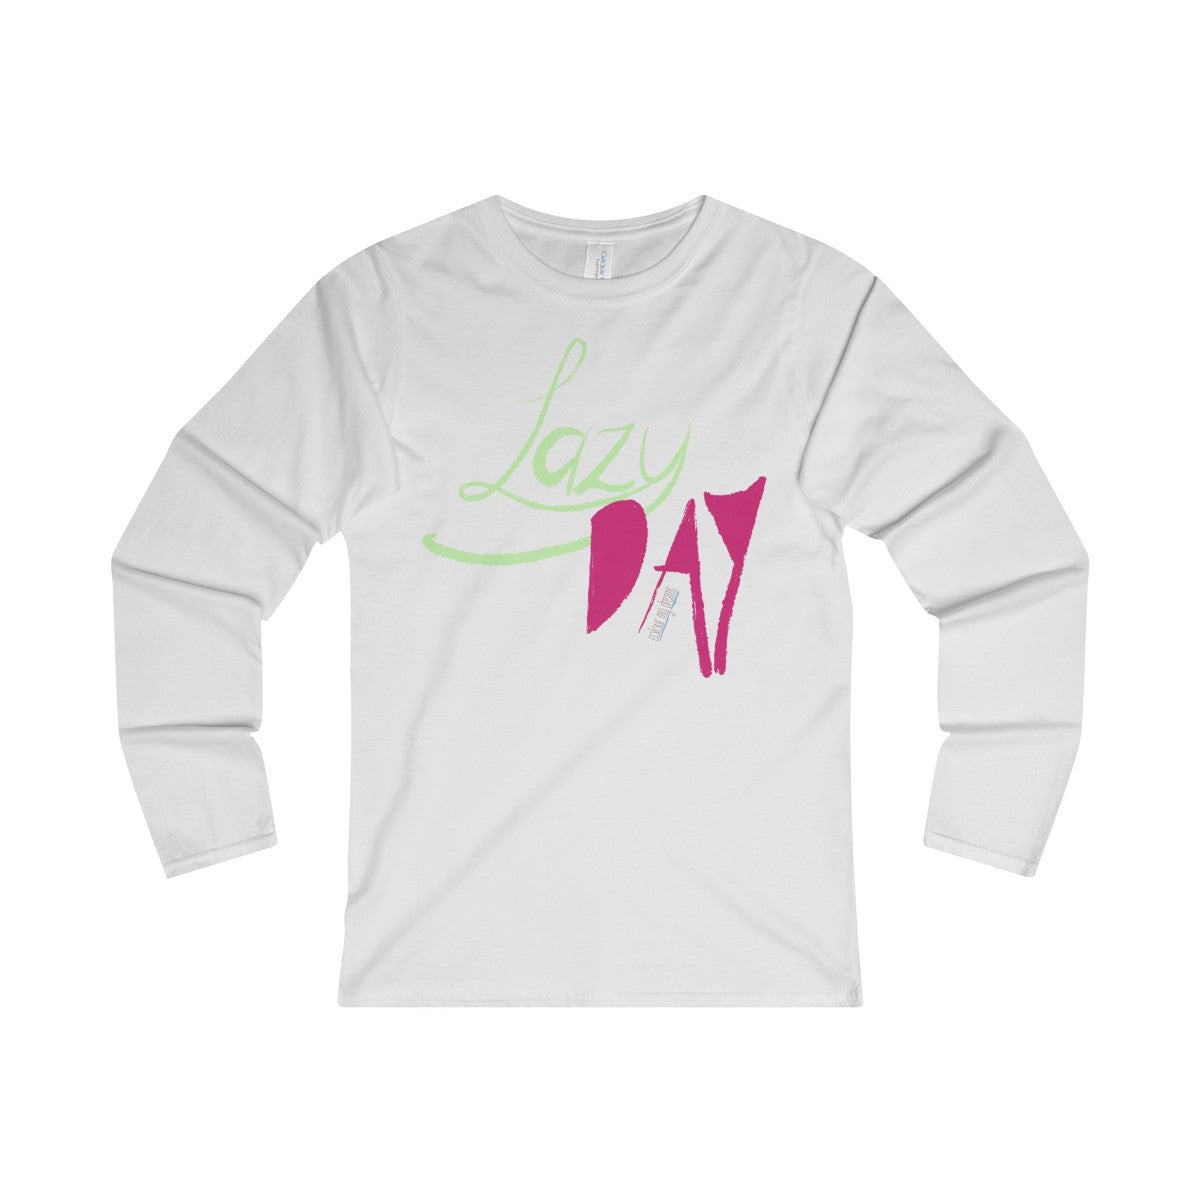 Women's' Long Sleeve T-Shirt - Lazy Day